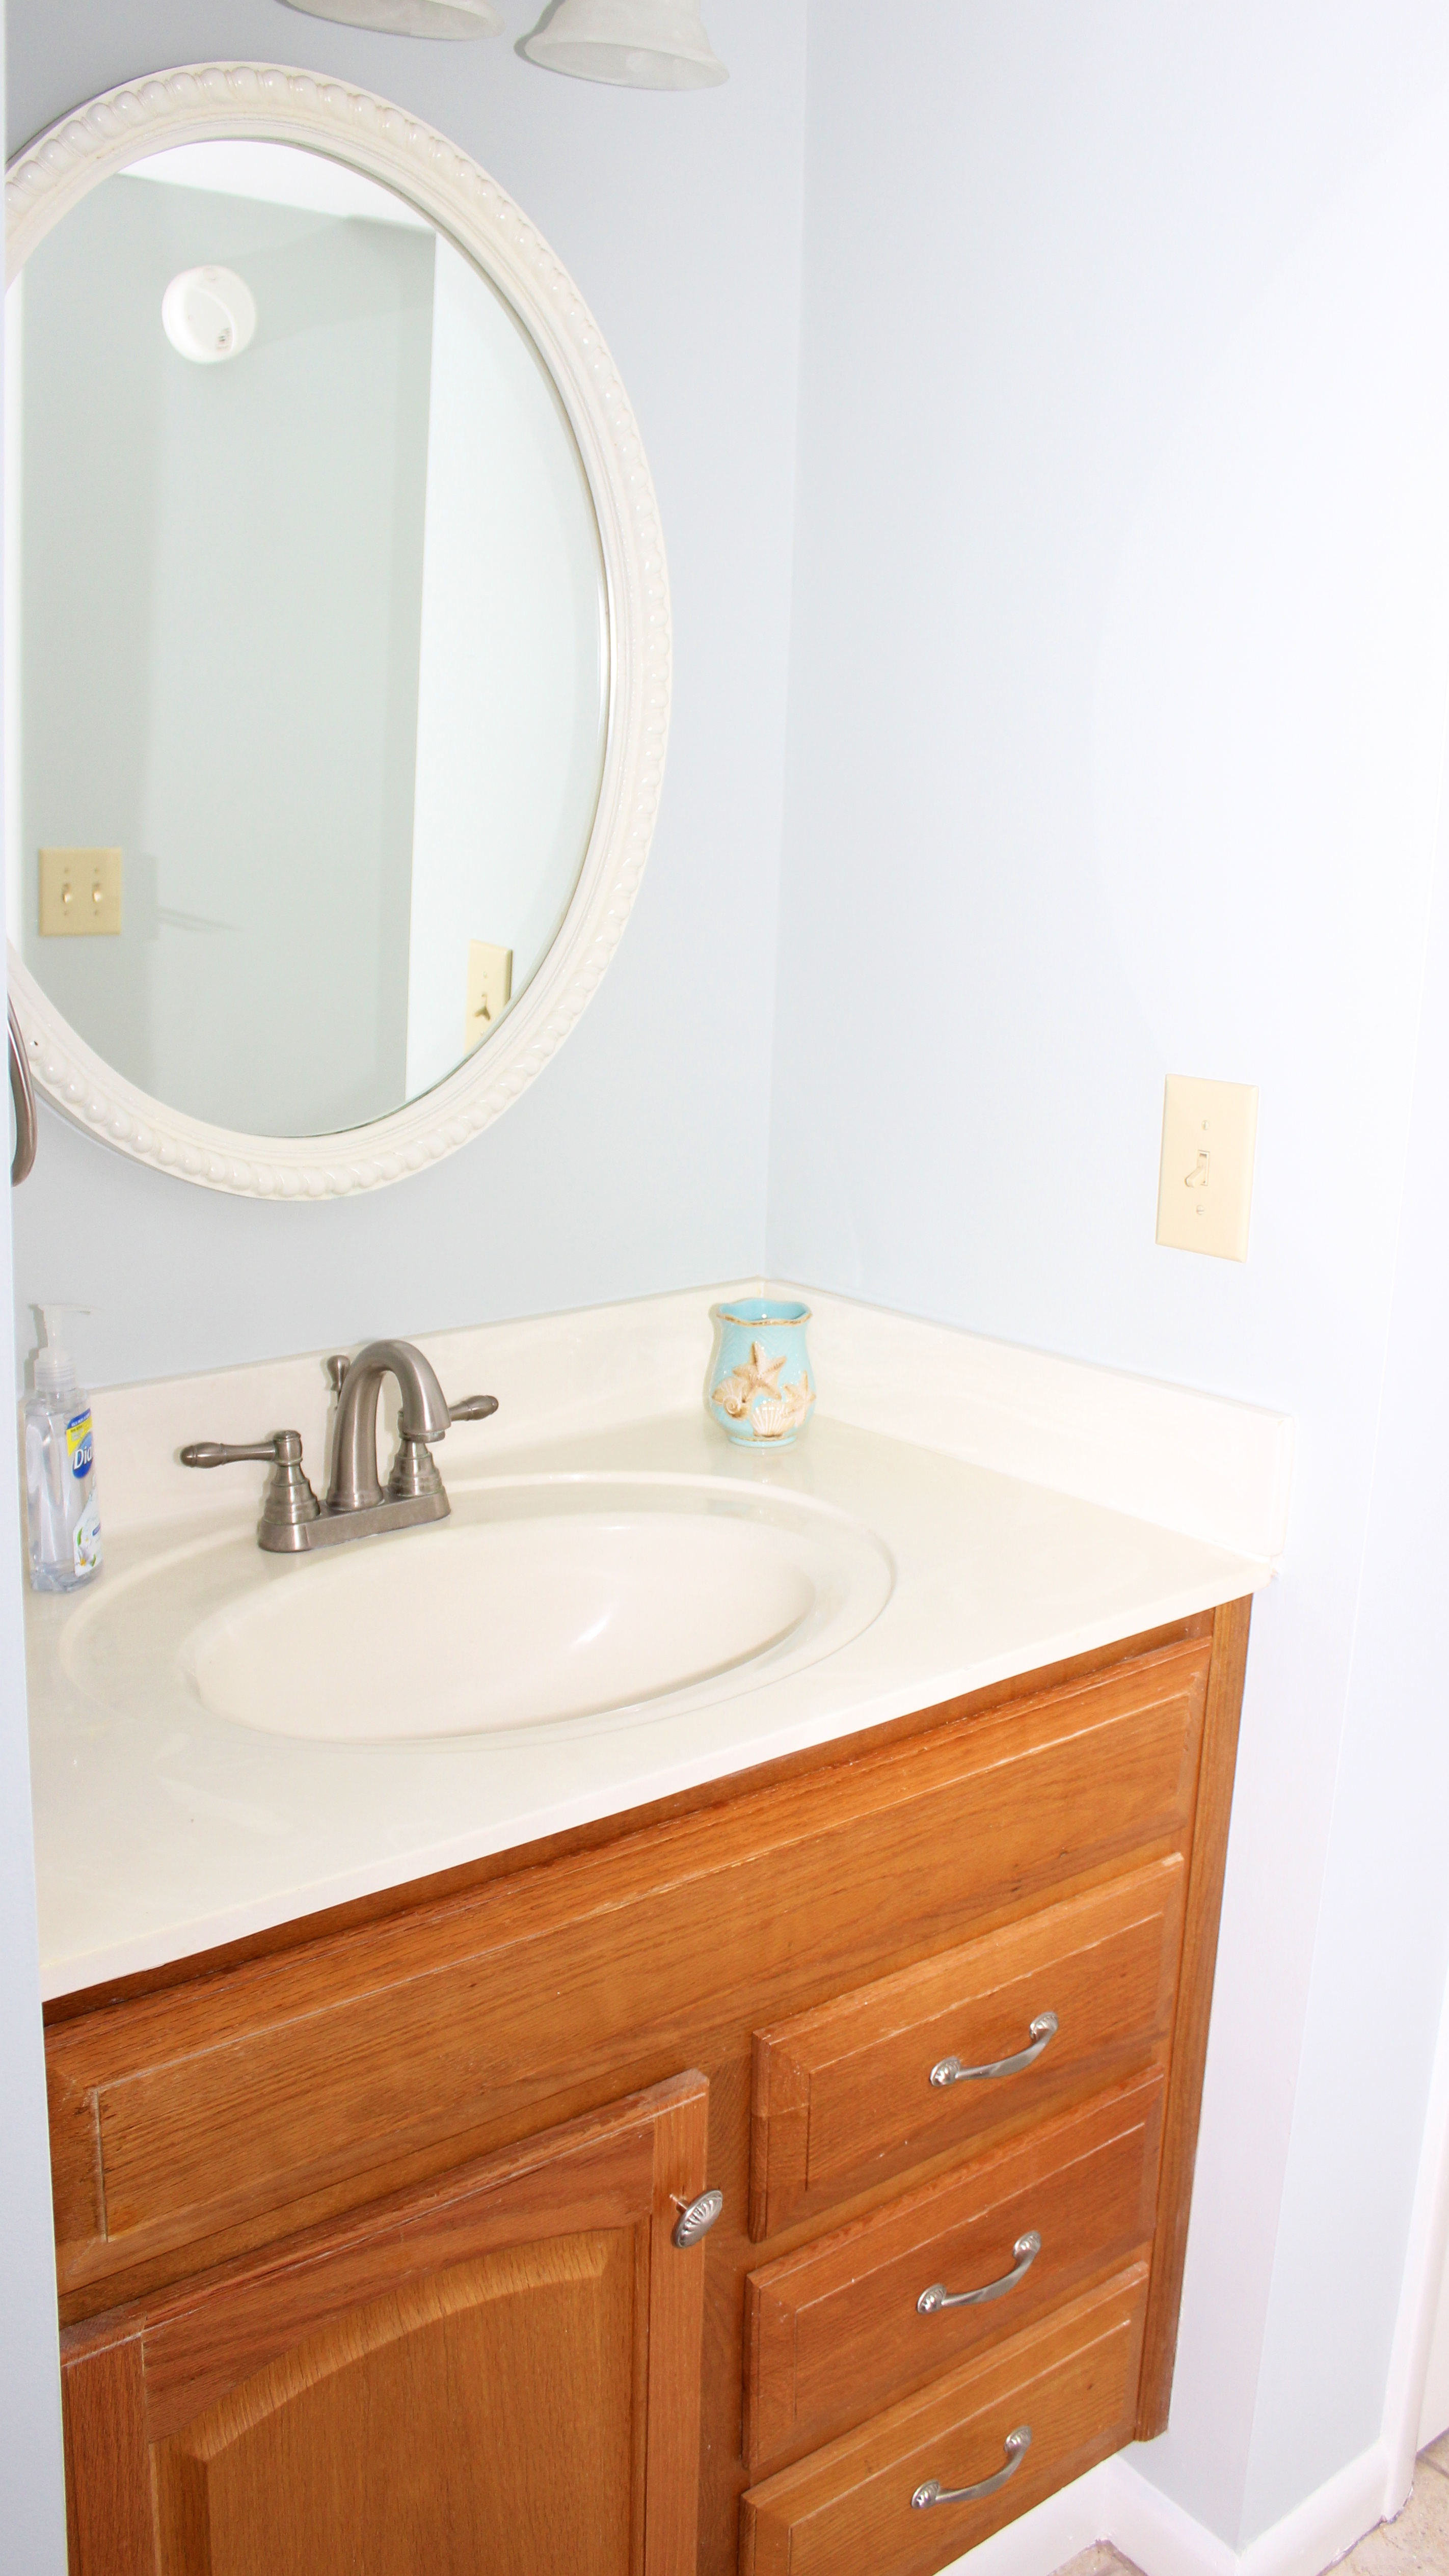 There is a separate sink area in the adjoining bath.